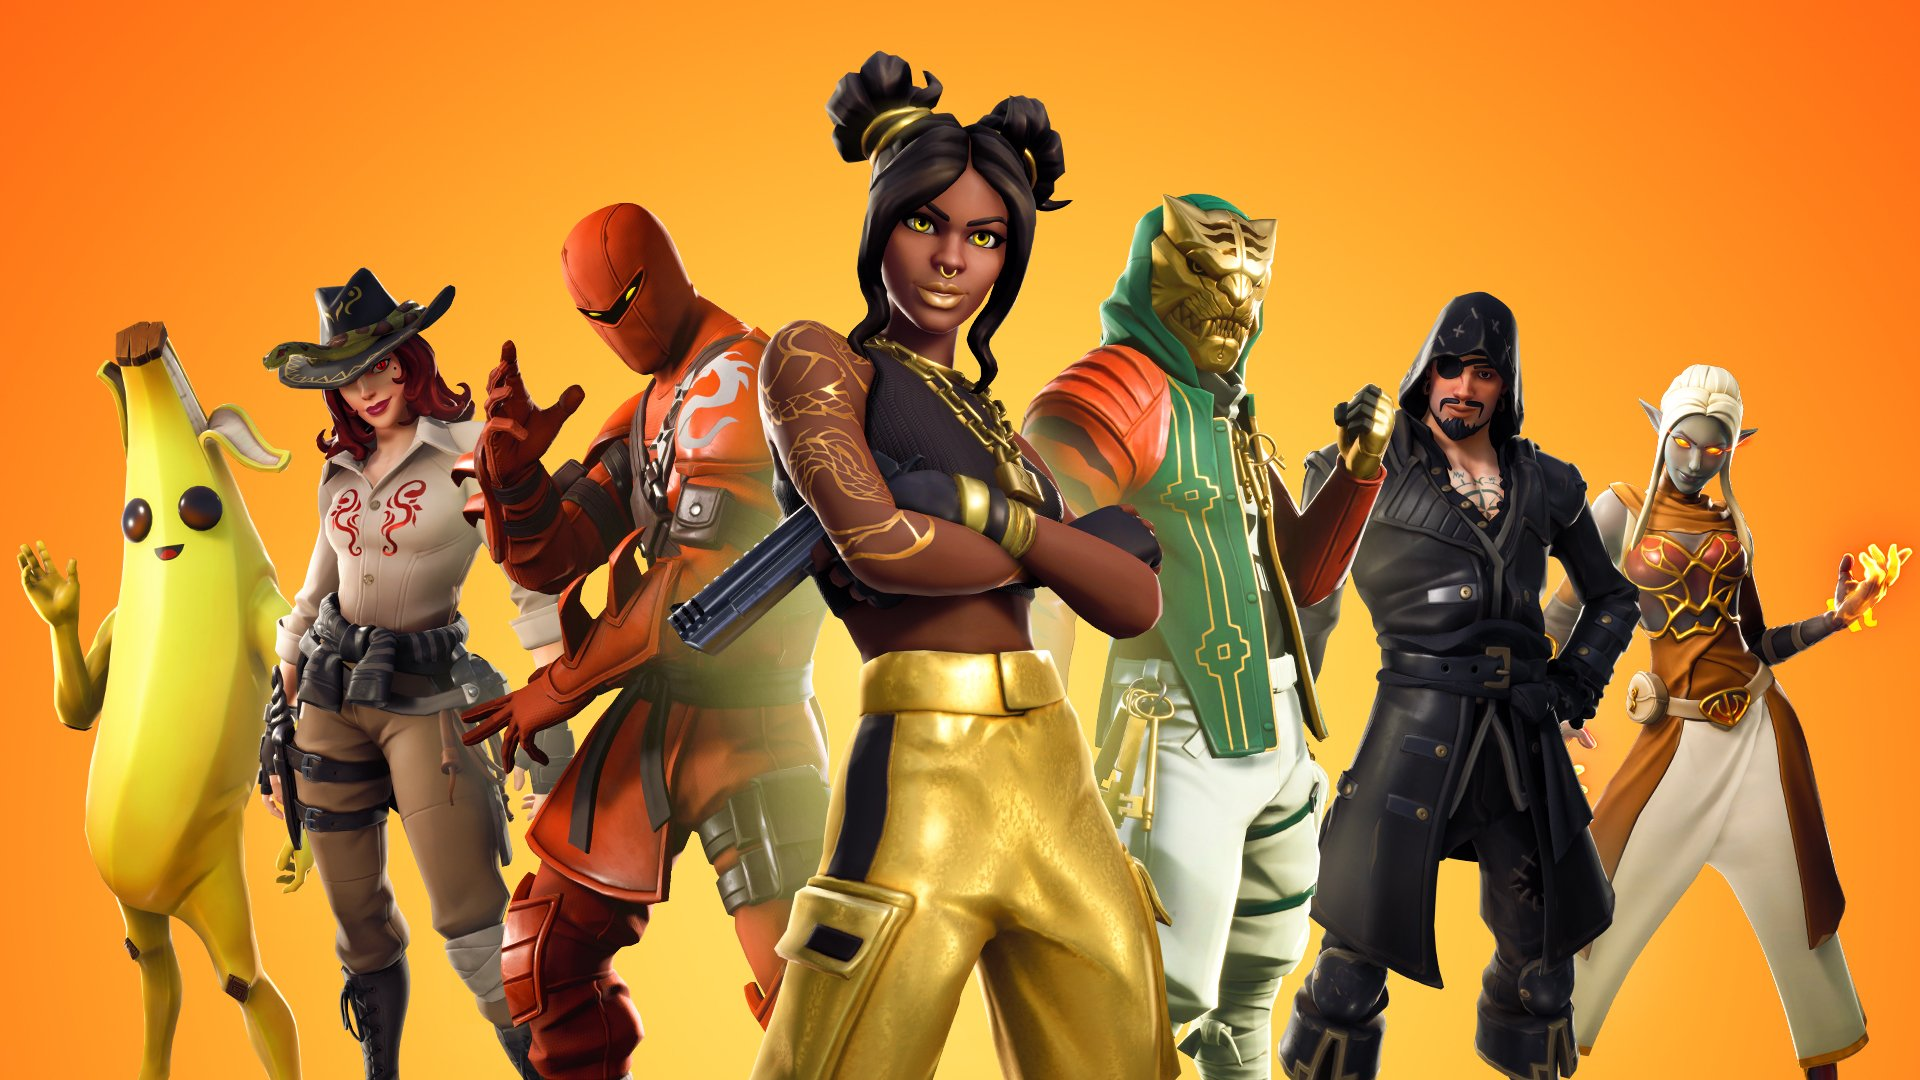 Fortnite Season 8 Battle Pass Tier 100 Luxe Skin Different Styles 1920x1080